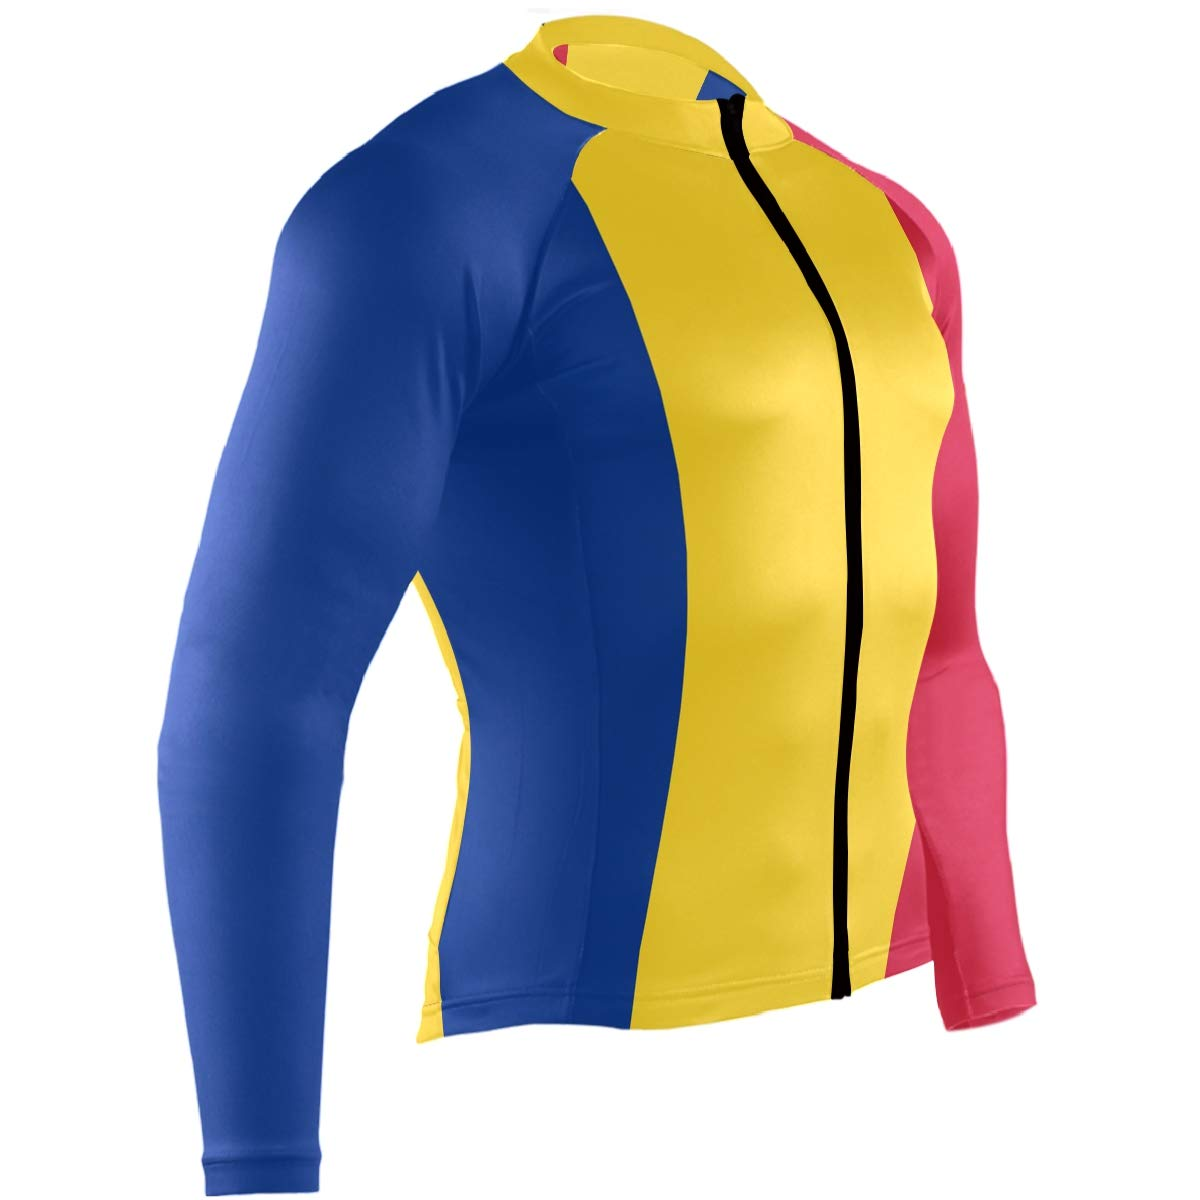 CHINEIN Mens Cycling Jersey Long Sleeve with 3 Rear Pockets Suit Romania Flag